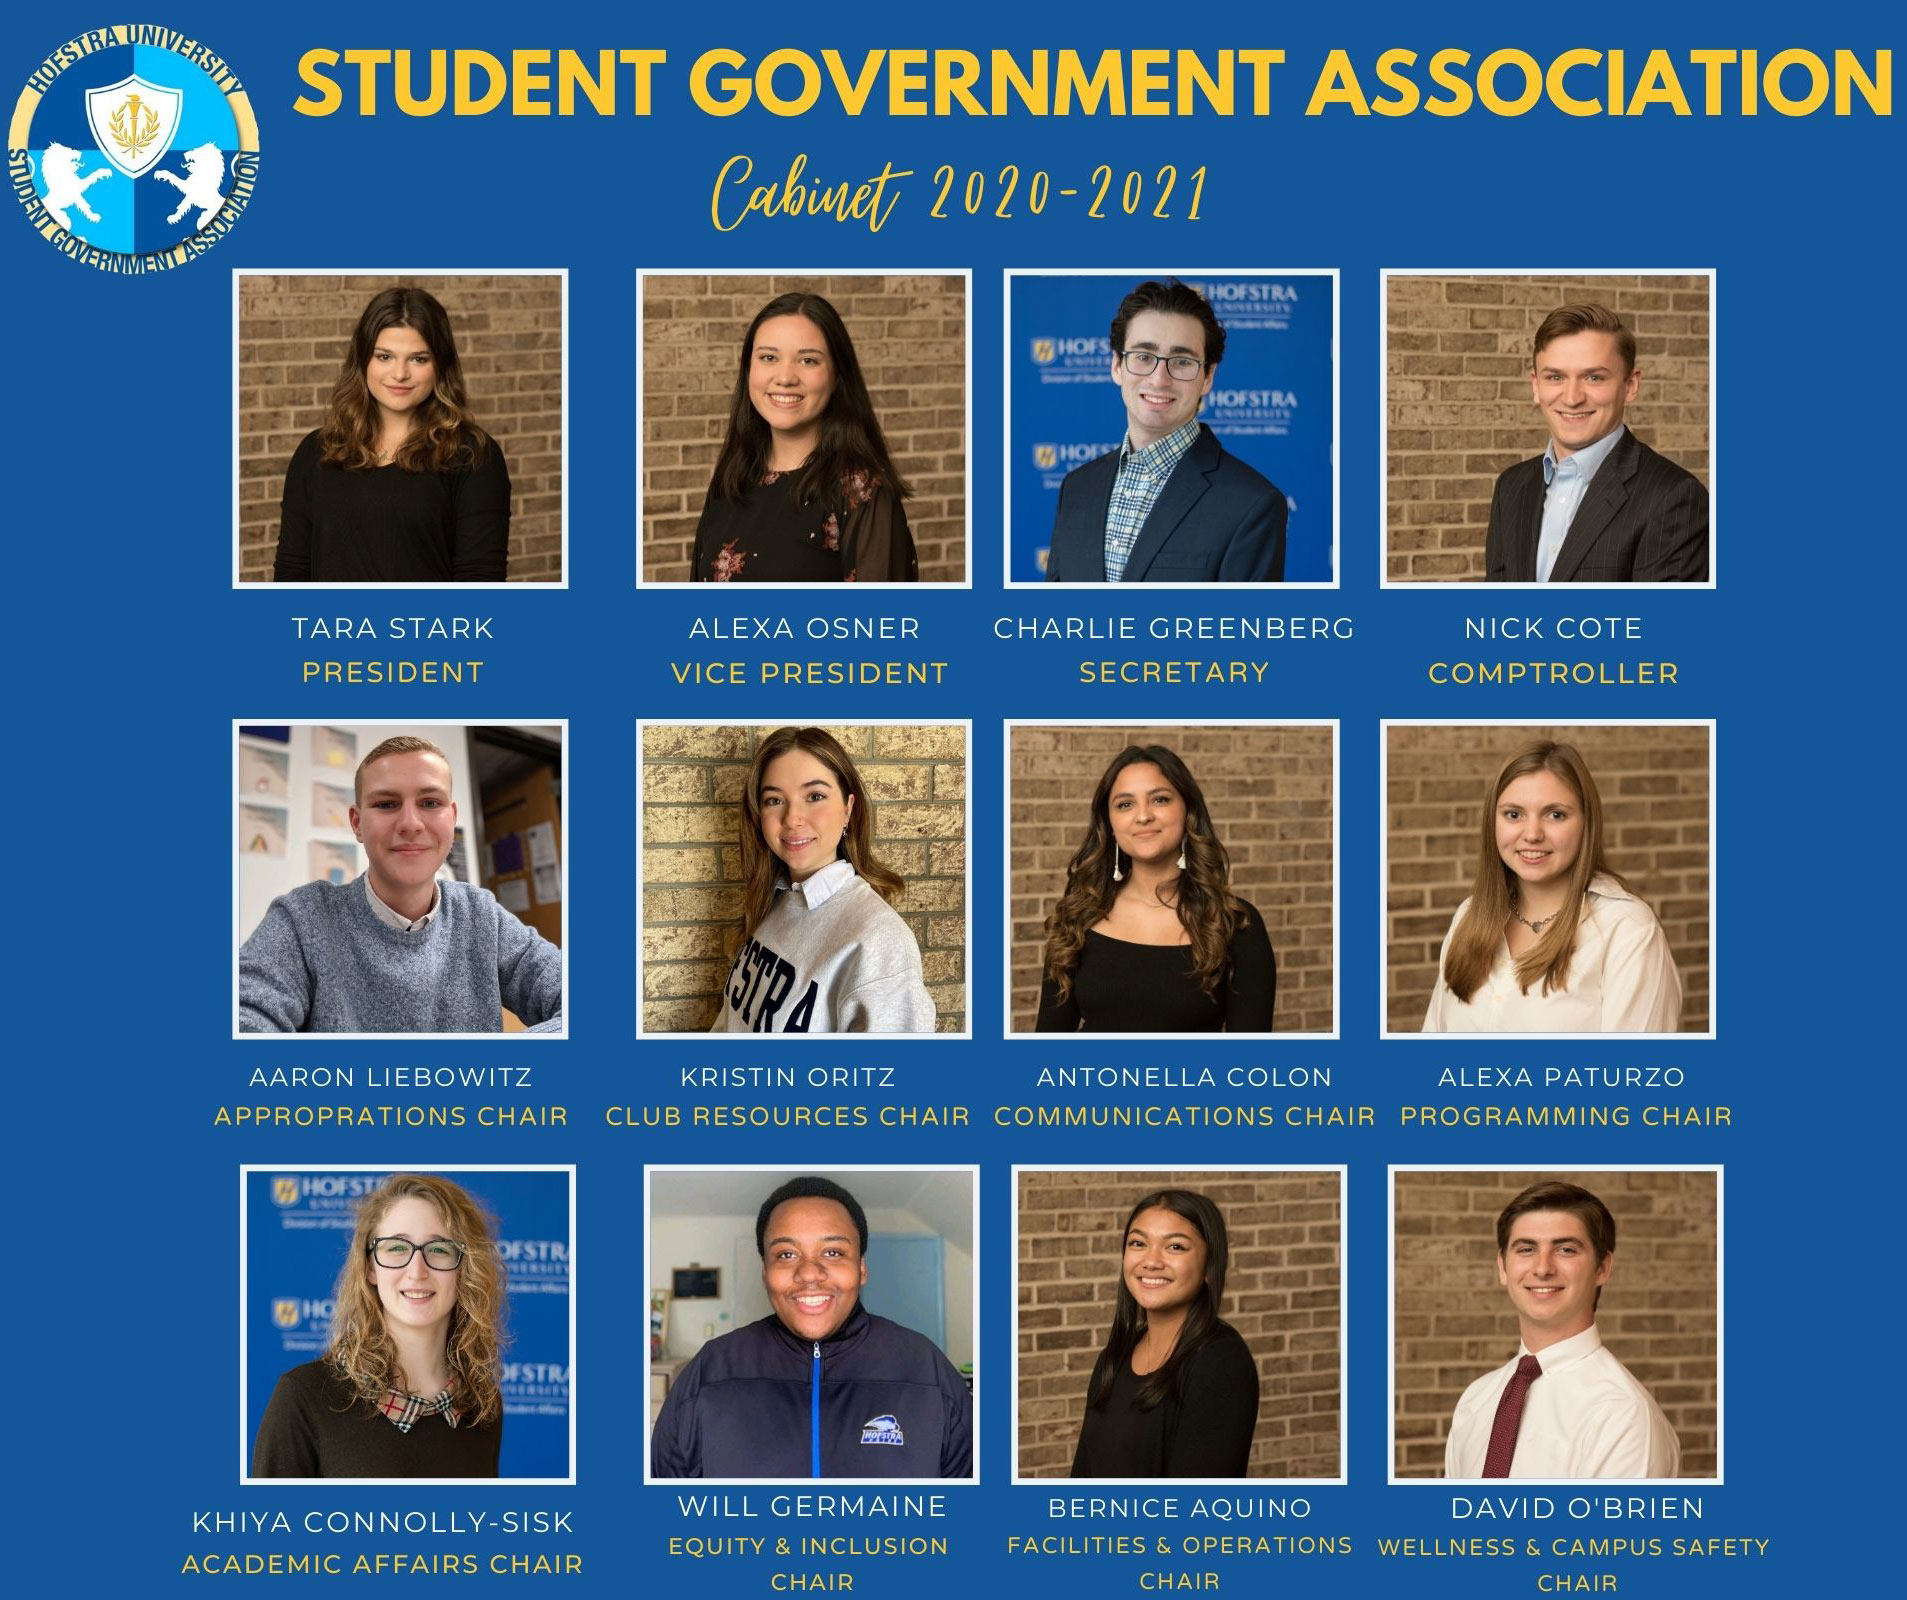 Student Government Association Cabinet